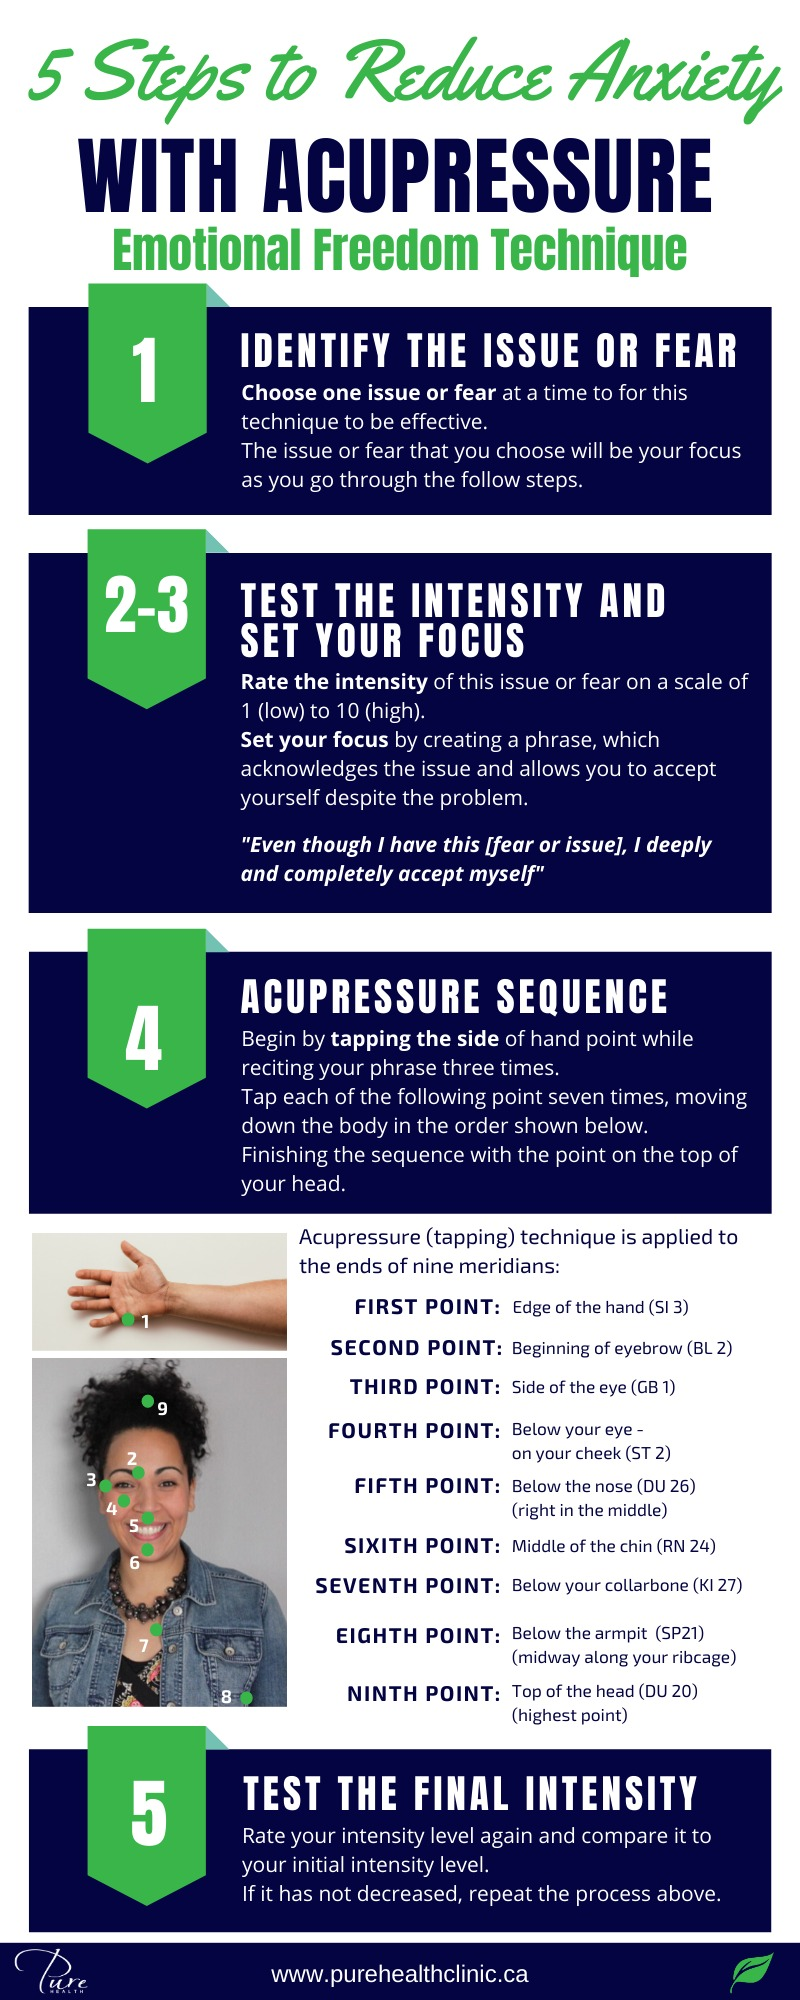 Emotional Freedom Technique with Acupressure